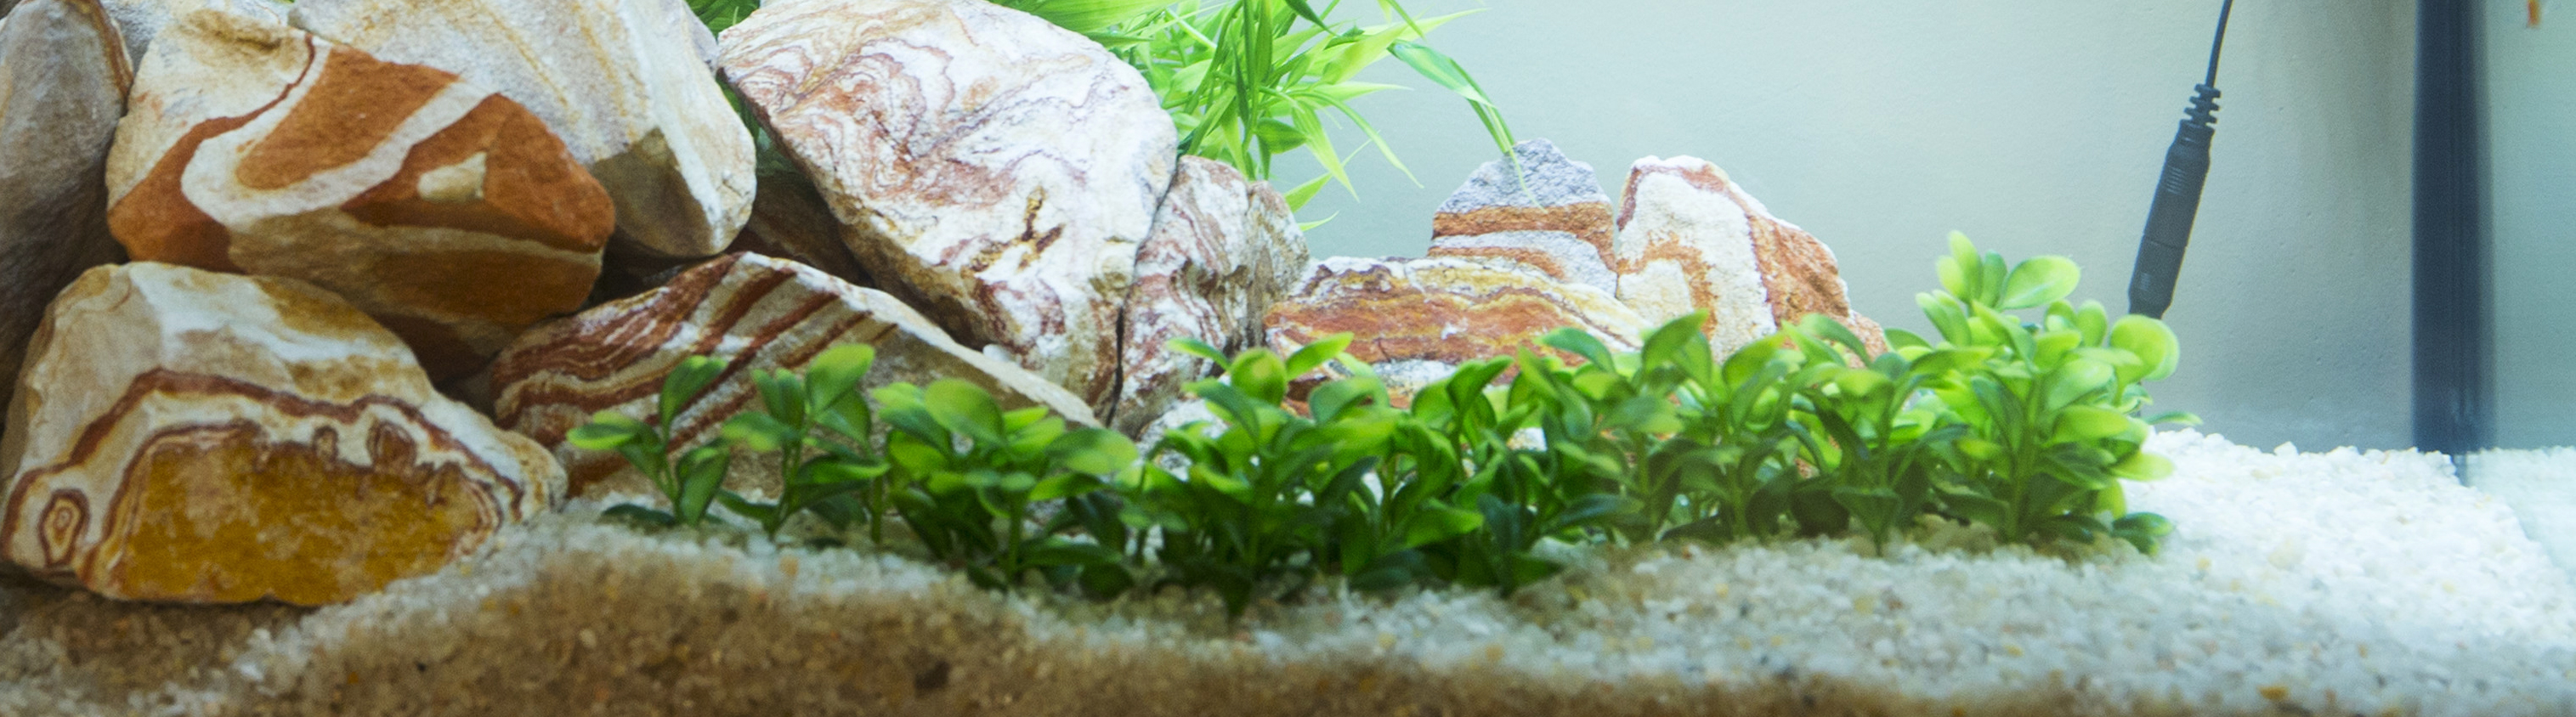 Freshwater aquarium fish high ph - Fish Waste And Other Decomposing Material Will Produce Ammonia In High Quantities This Chemical Will Kill Animals In An Aquarium